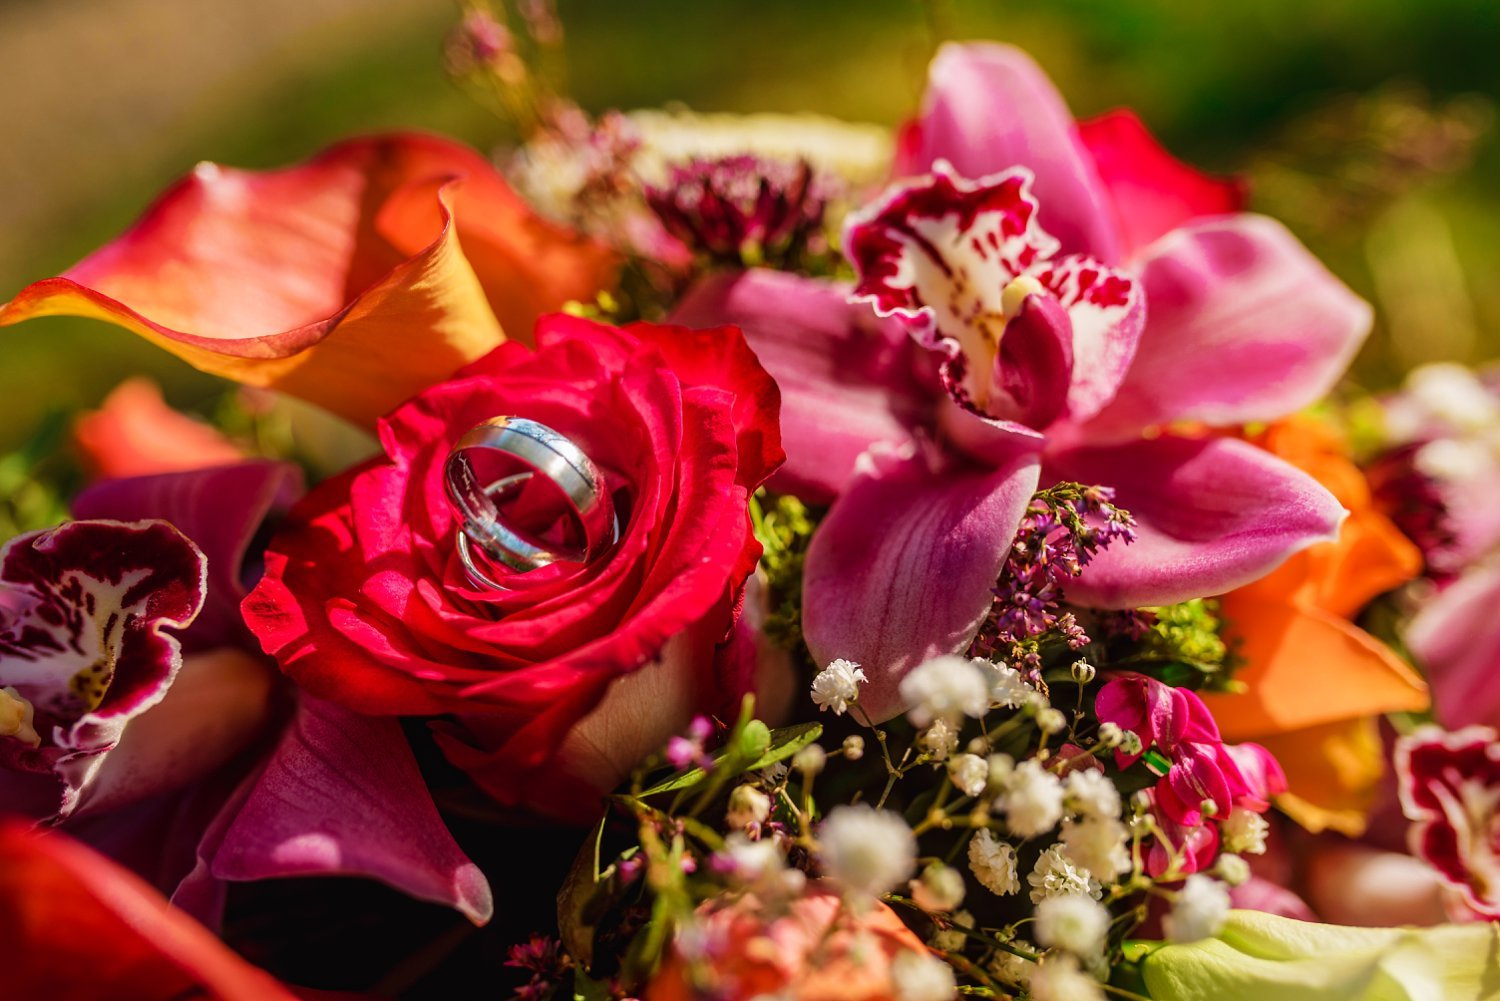 New Place Hotel Wedding - wedding rings photo on the boquet of flowers